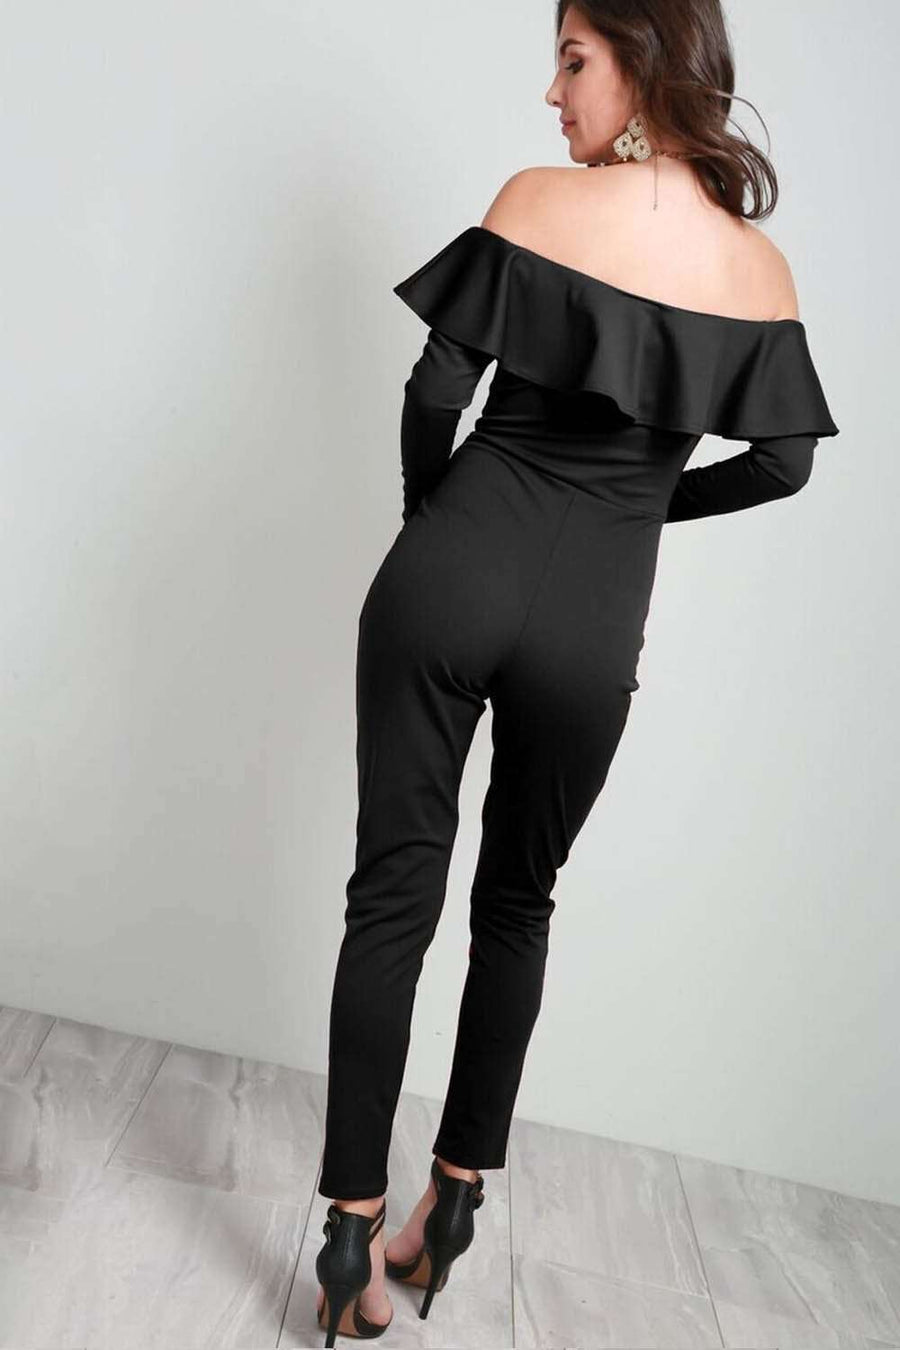 Karol Black Bardot Frill Long Sleeve Jumpsuit - bejealous-com